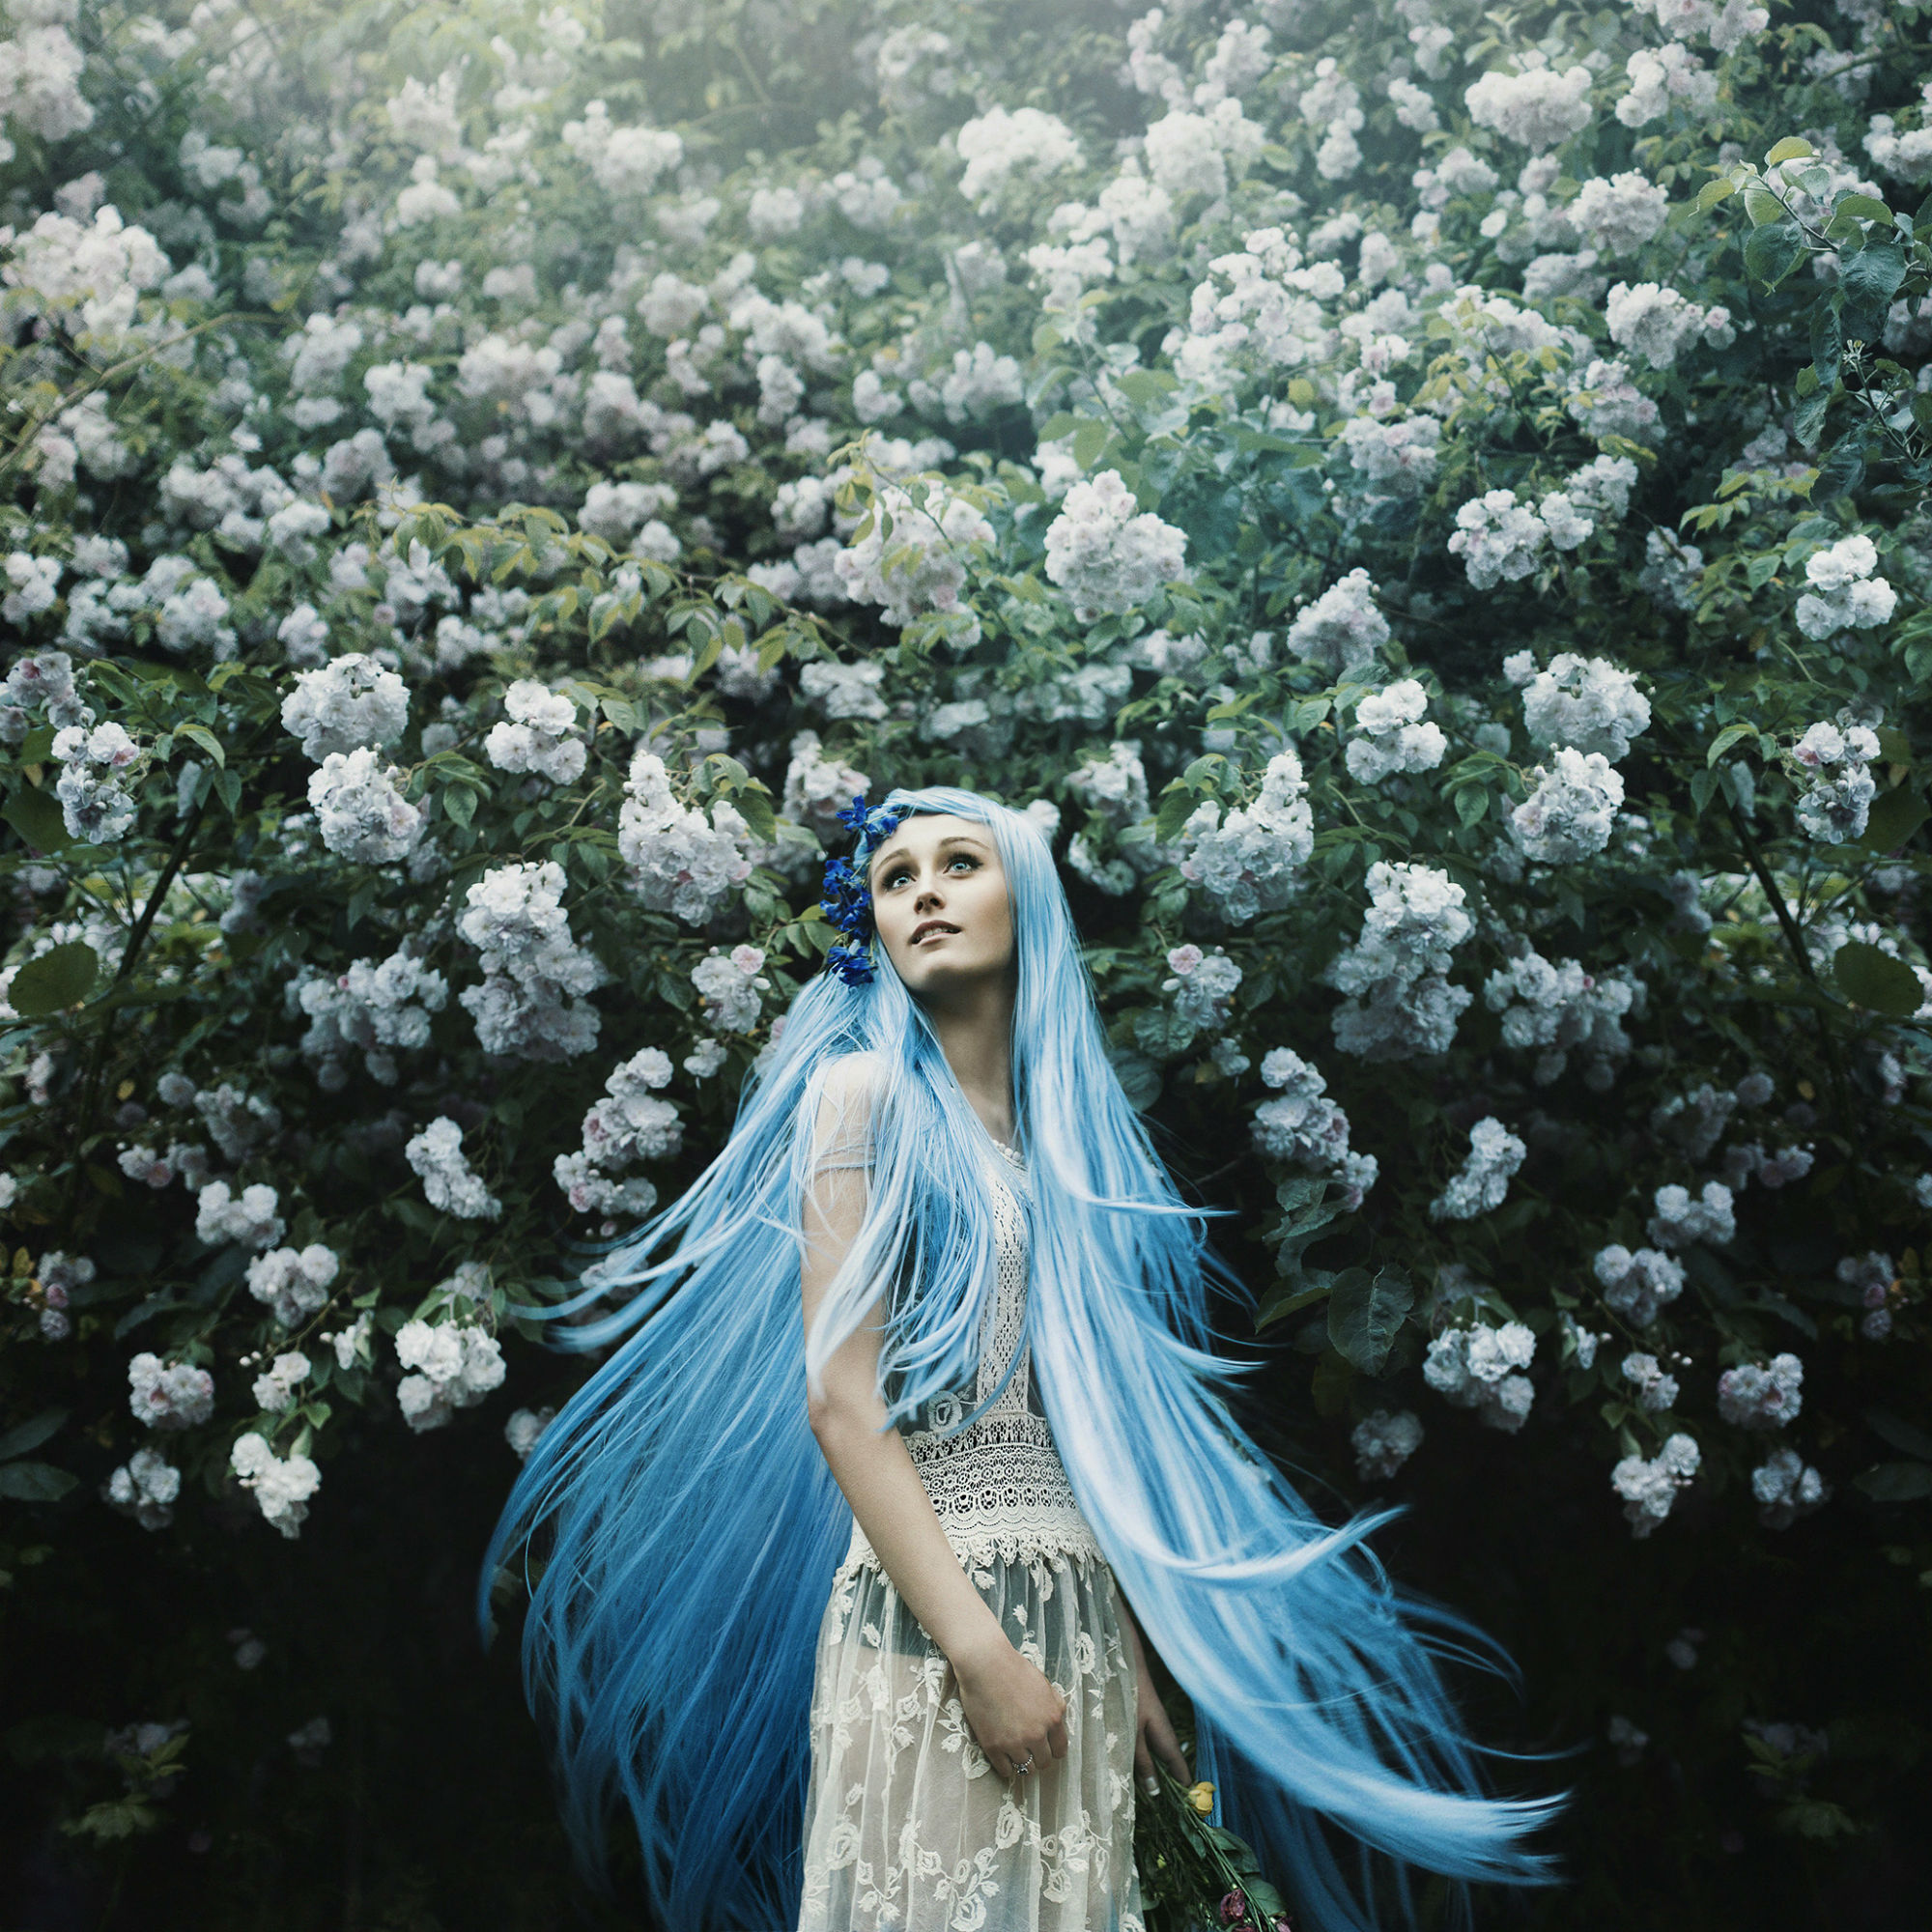 Lost Amongst the Spring Flowers by Bella Kotak